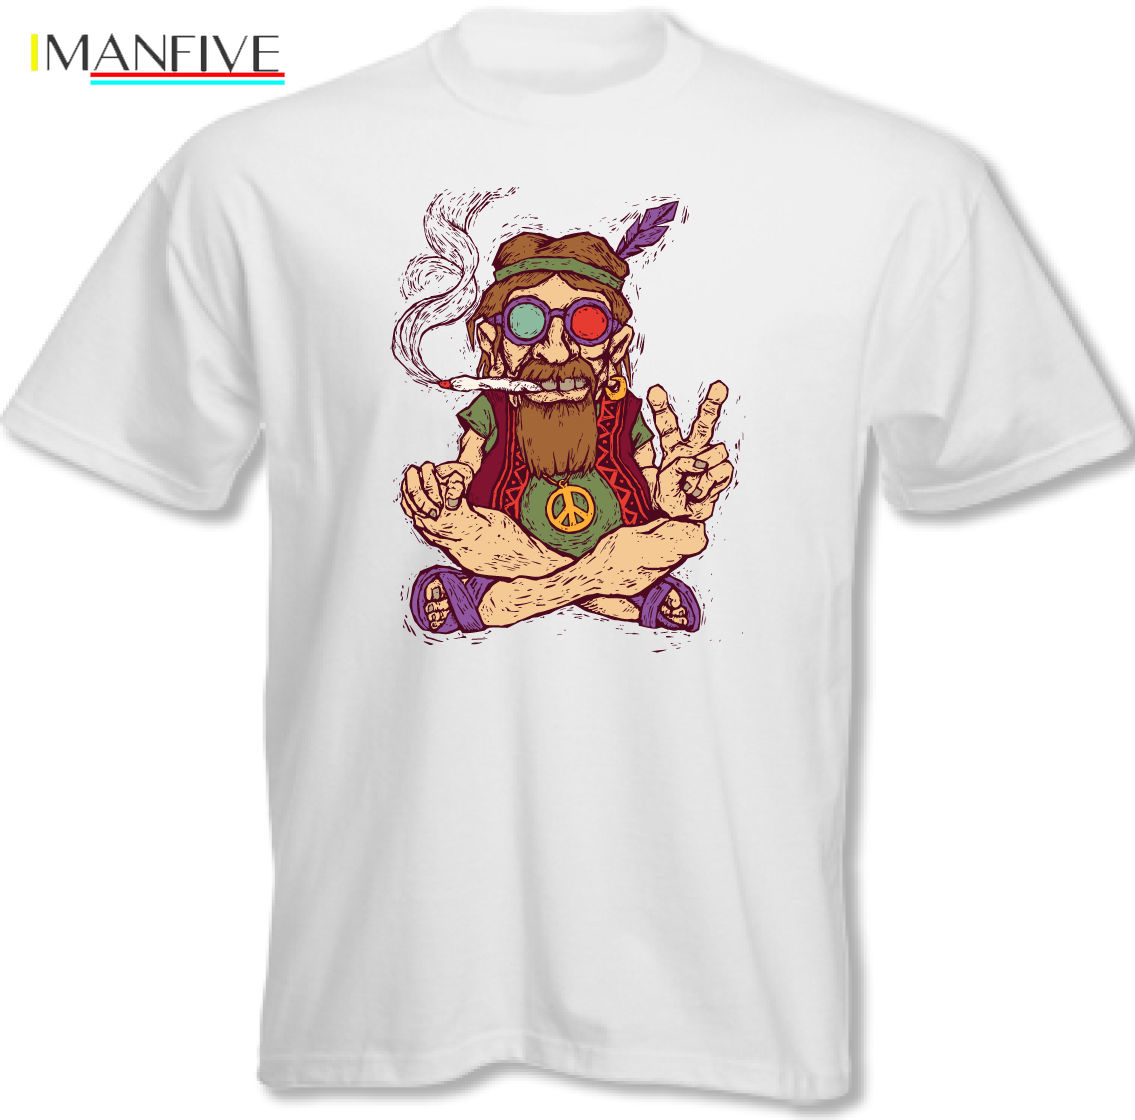 Chilled Out Hippy Smoking A Spliff - Mens Funny T-Shirt Peace Love Weed New Design Cotton Male Tee Shirt Designing Simple Style